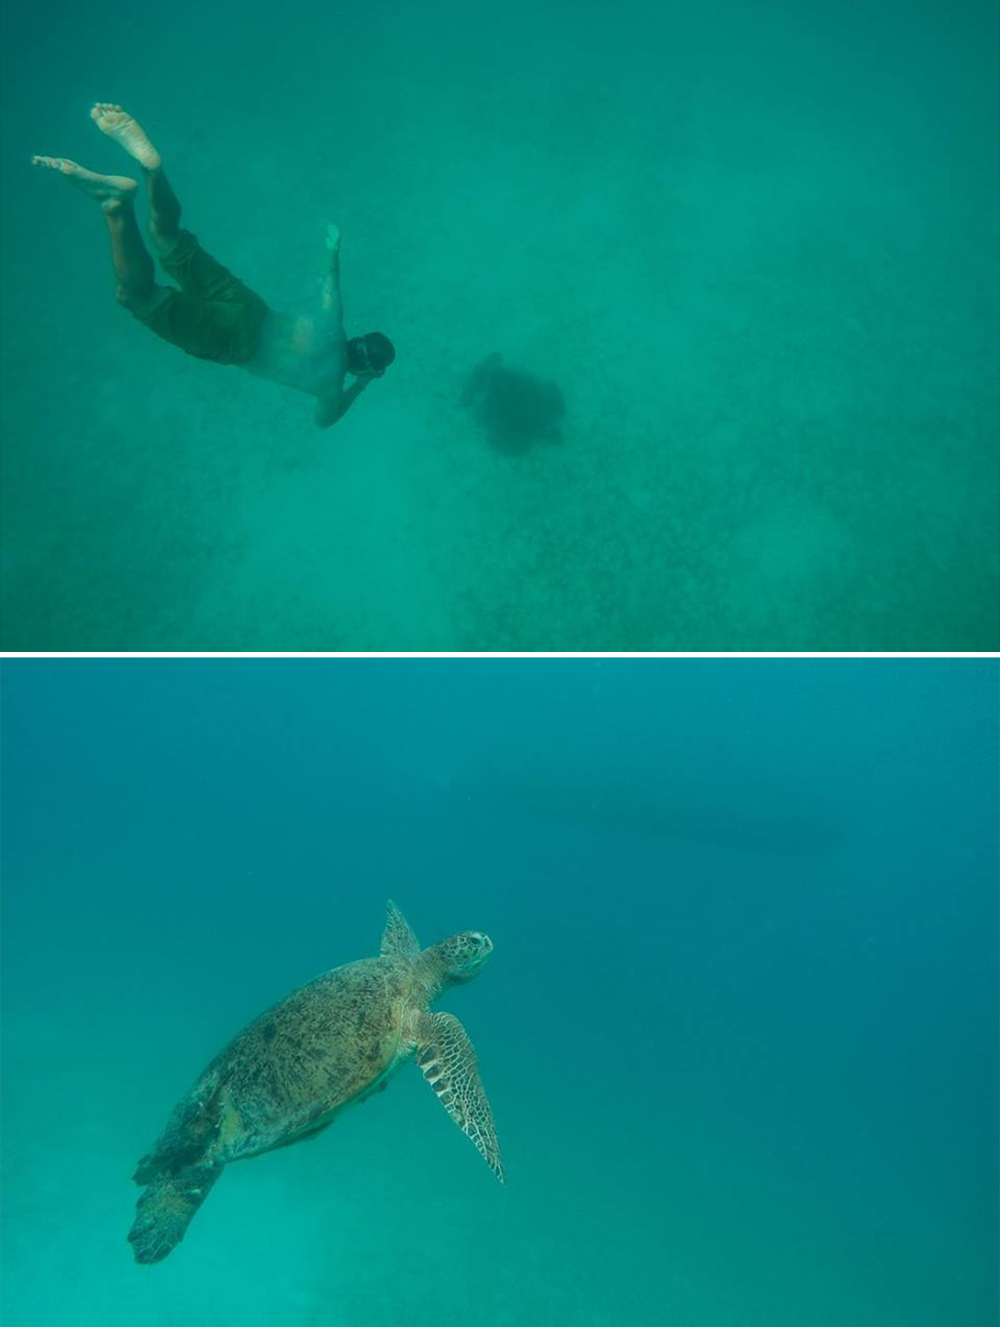 OUR FIRST SEA TURTLE SIGHTING ON LUBIN'S BIRTHDAY!